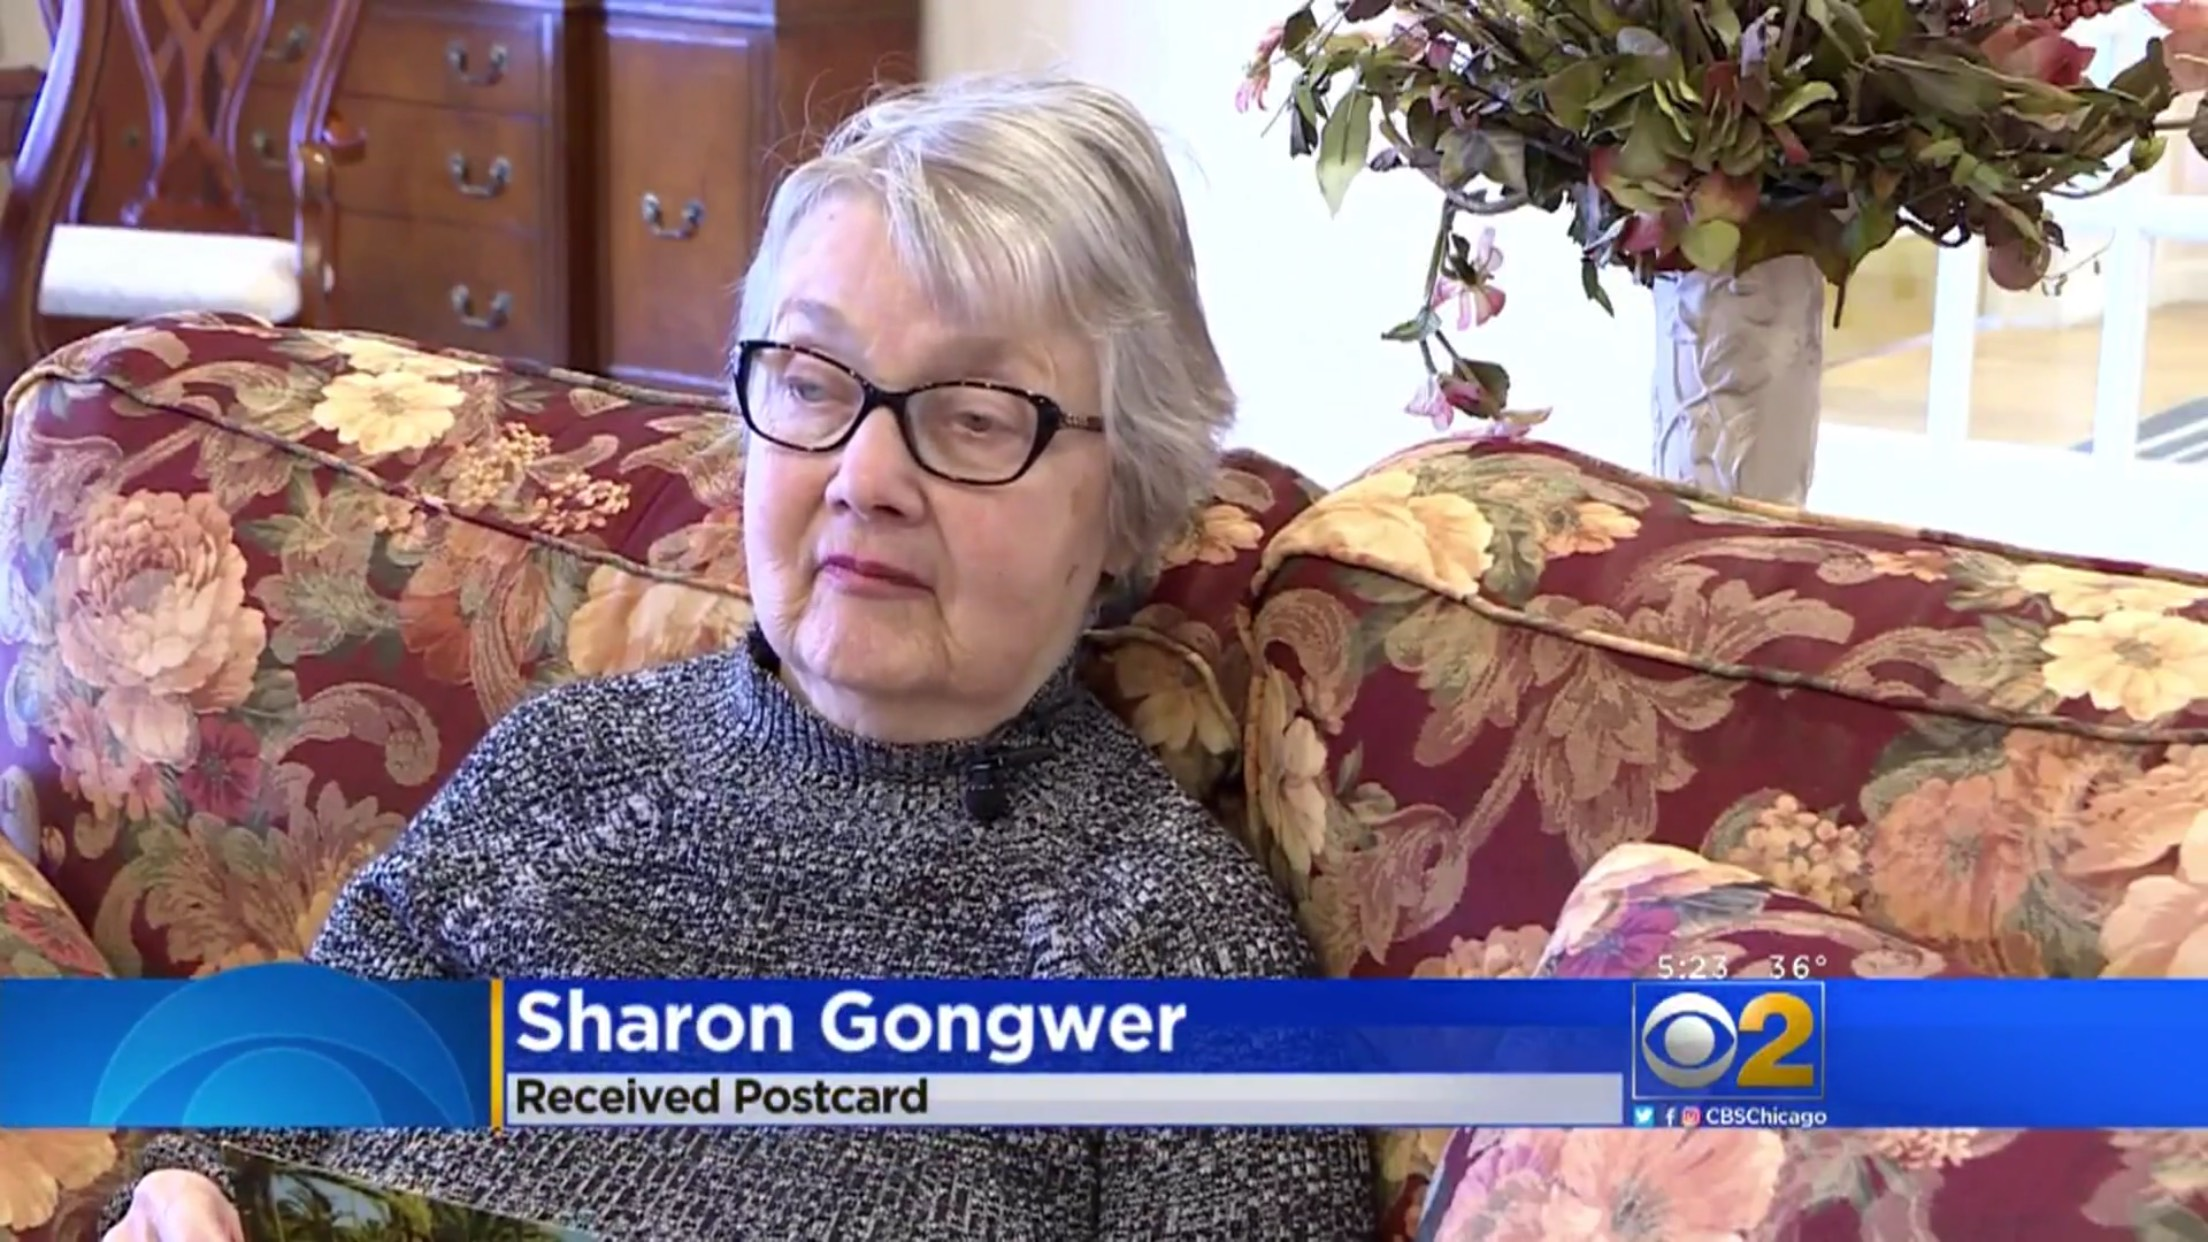 Sharon Gongwer: Received Postcard